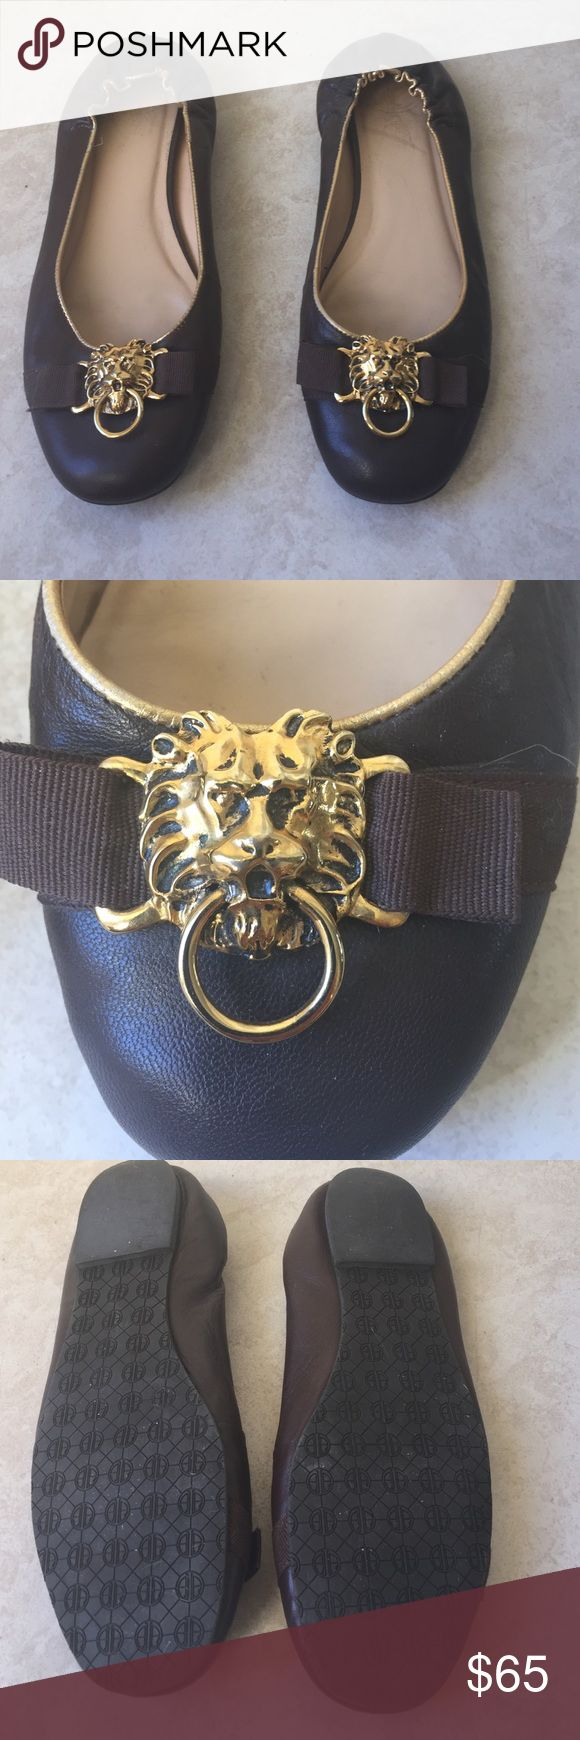 Lilly Pulitzer Brown with Gold Ballet Shoes Lilly Pulitzer leather chocolate brown shoes with gold trim and gold lion accent. Super cute and in great condition. Lilly Pulitzer Shoes Flats & Loafers